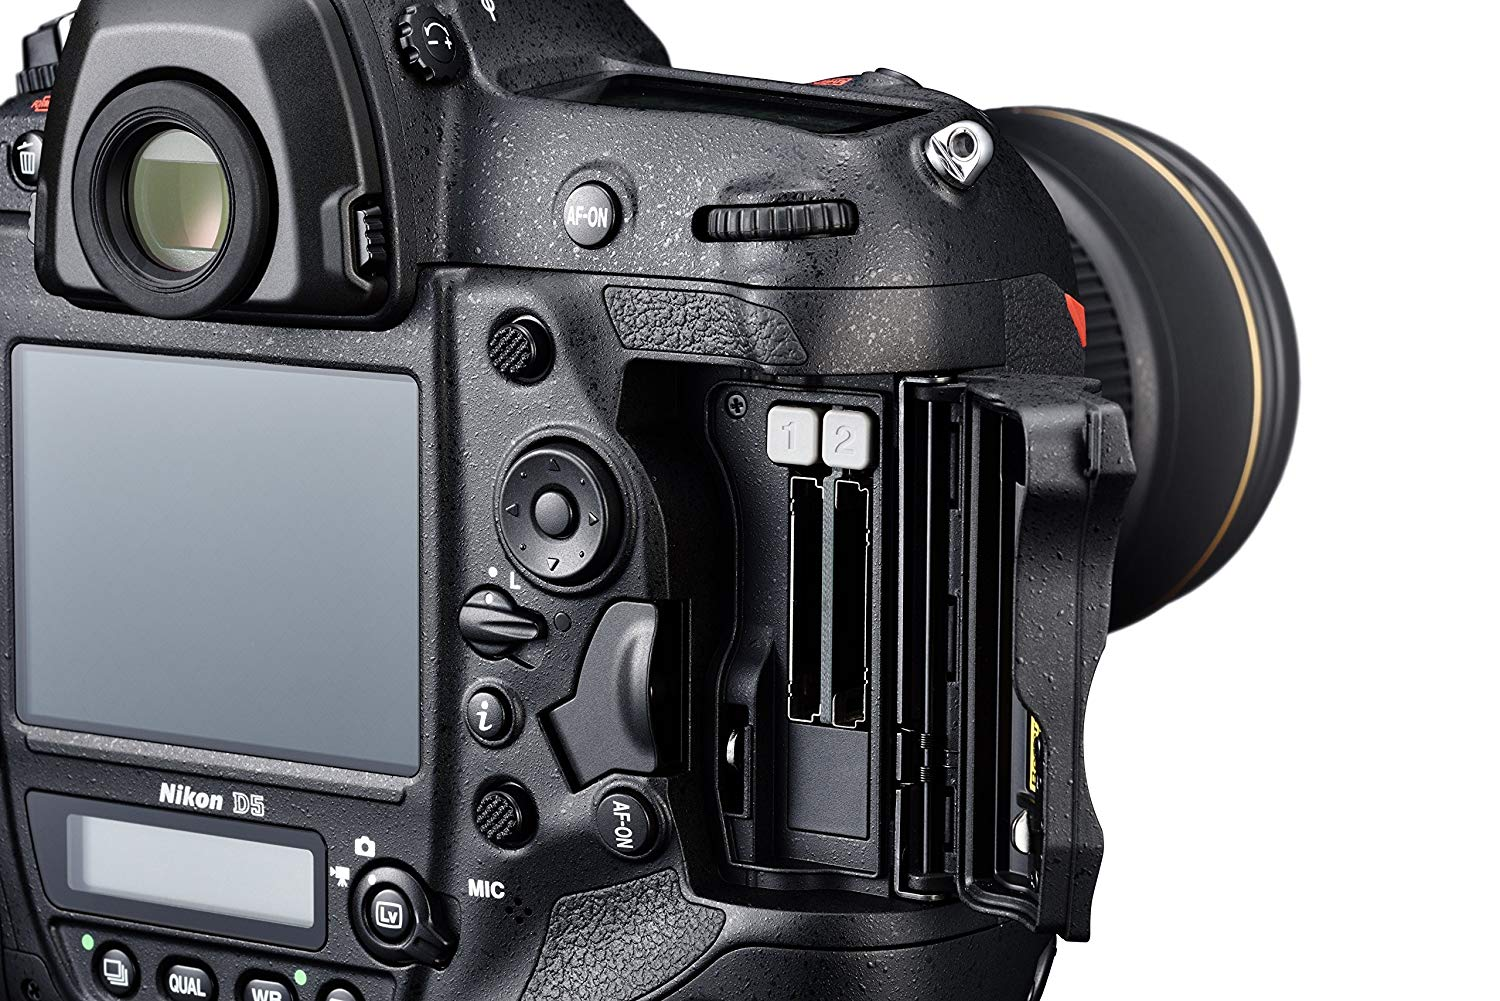 The Nikon D5 Build and Handling image